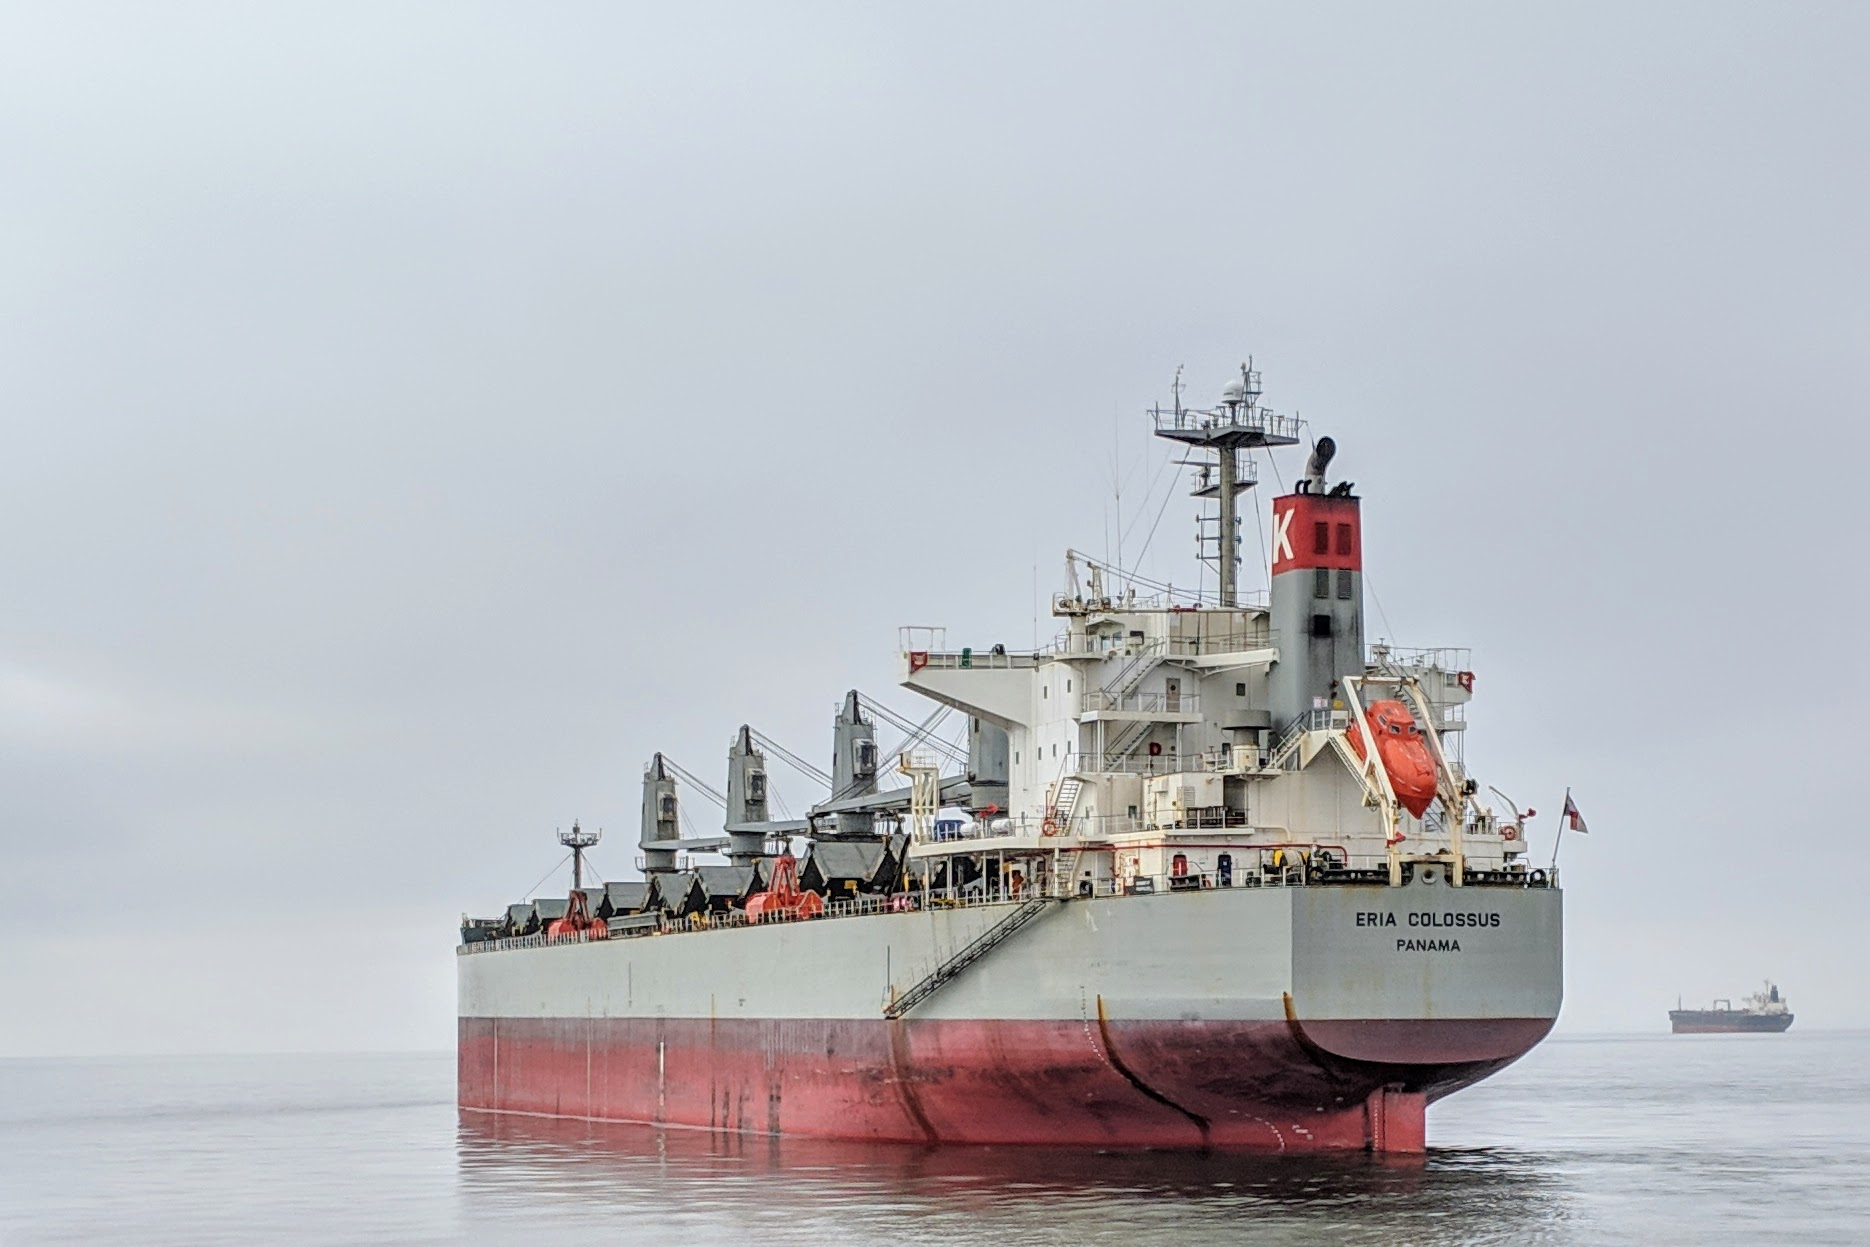 Eria Colossus - Panama, on the SF Bay